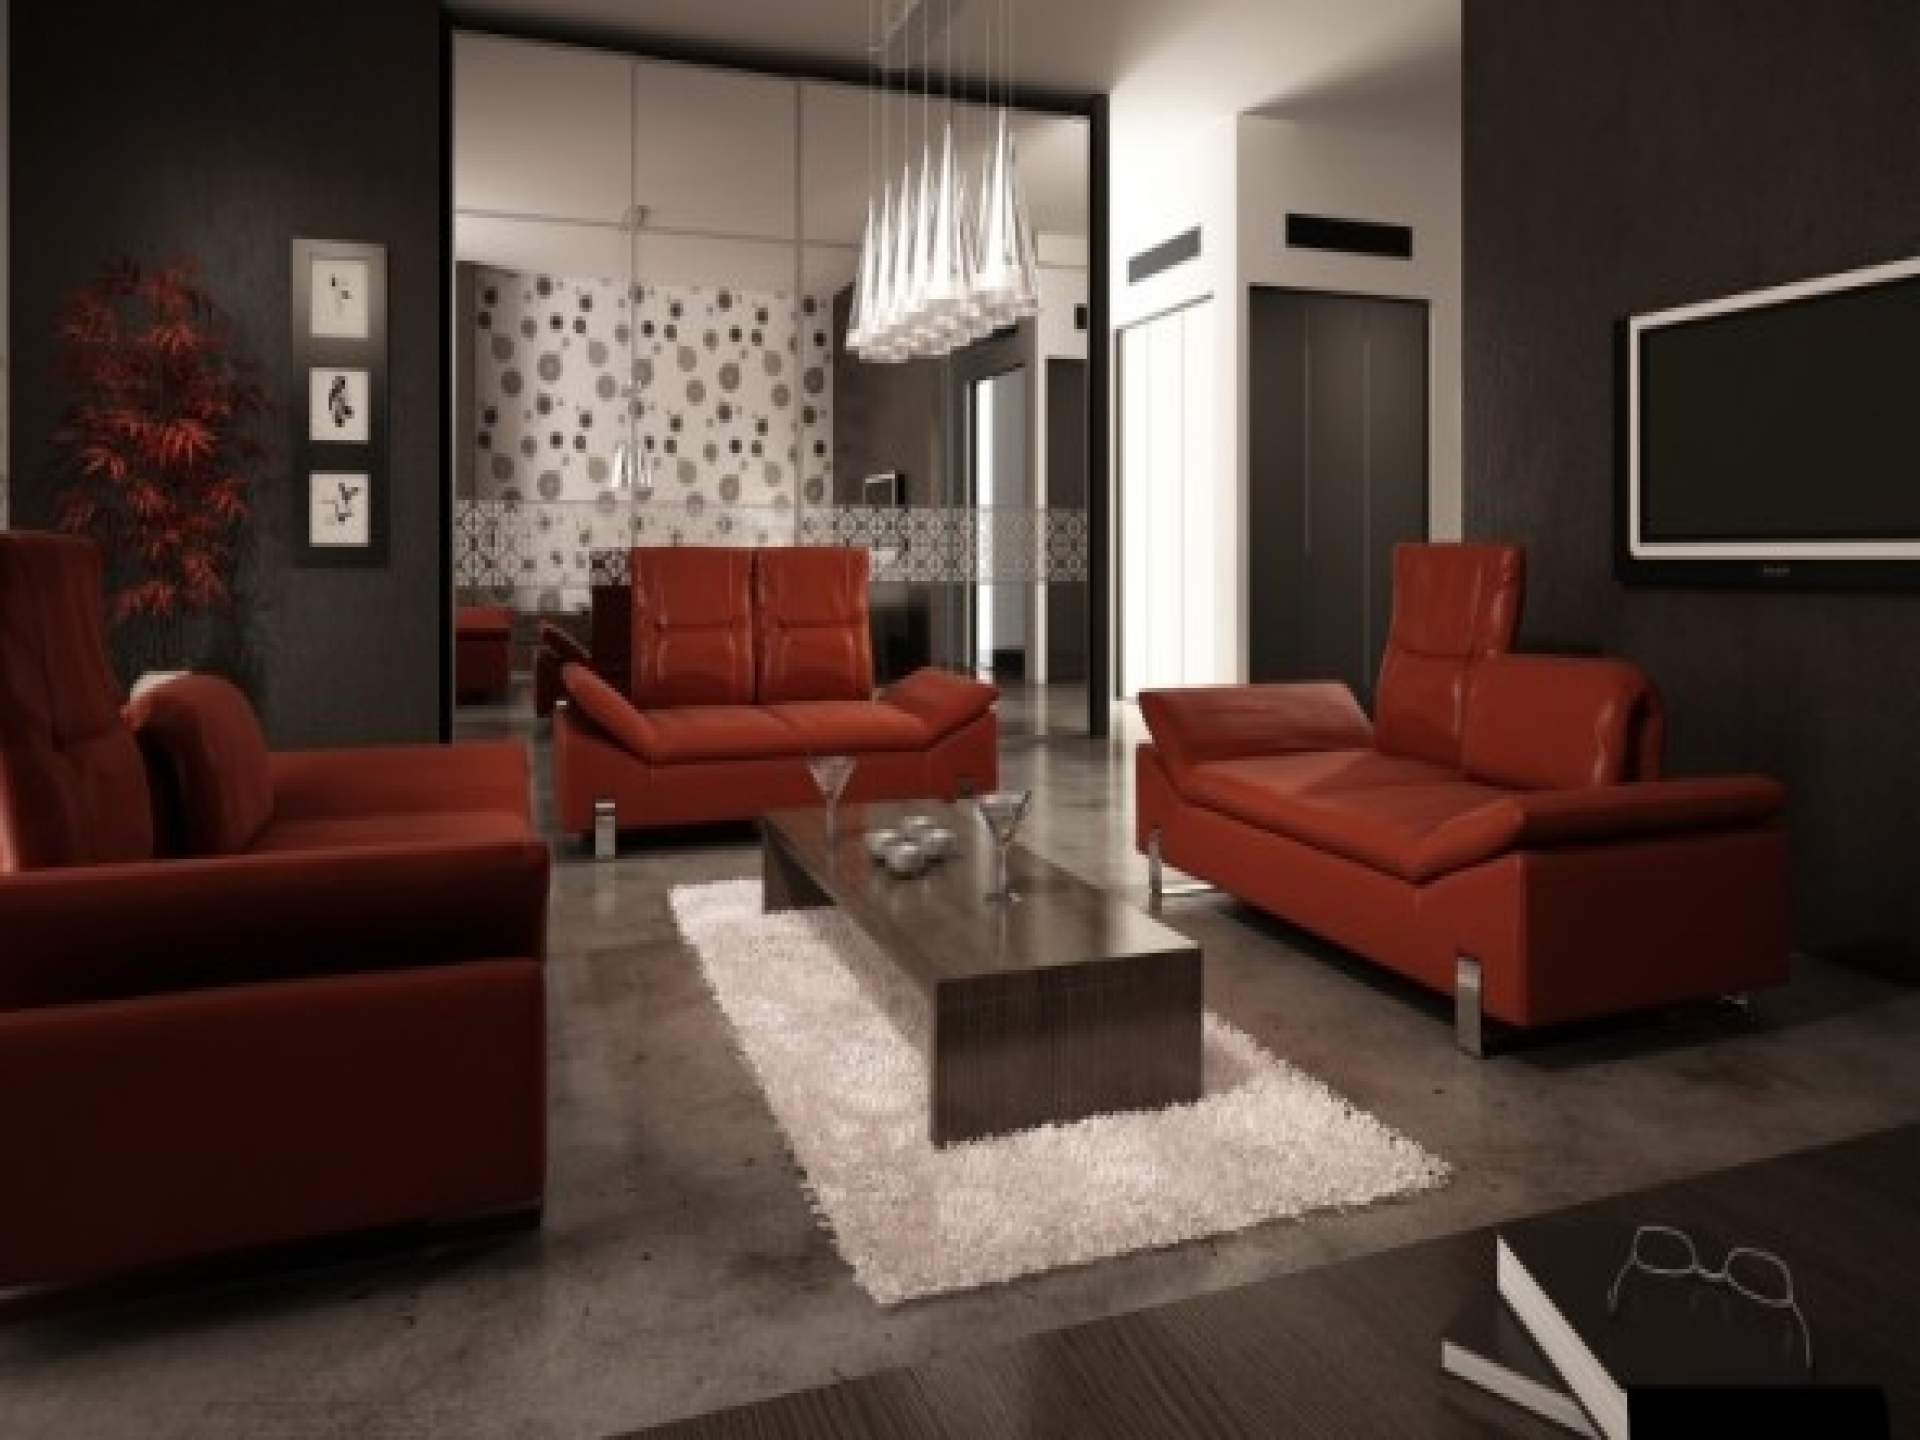 Famous Red Leather Couches For Living Room Inside Red Leather Sofa Living Room Ideas – Google Search (View 10 of 20)